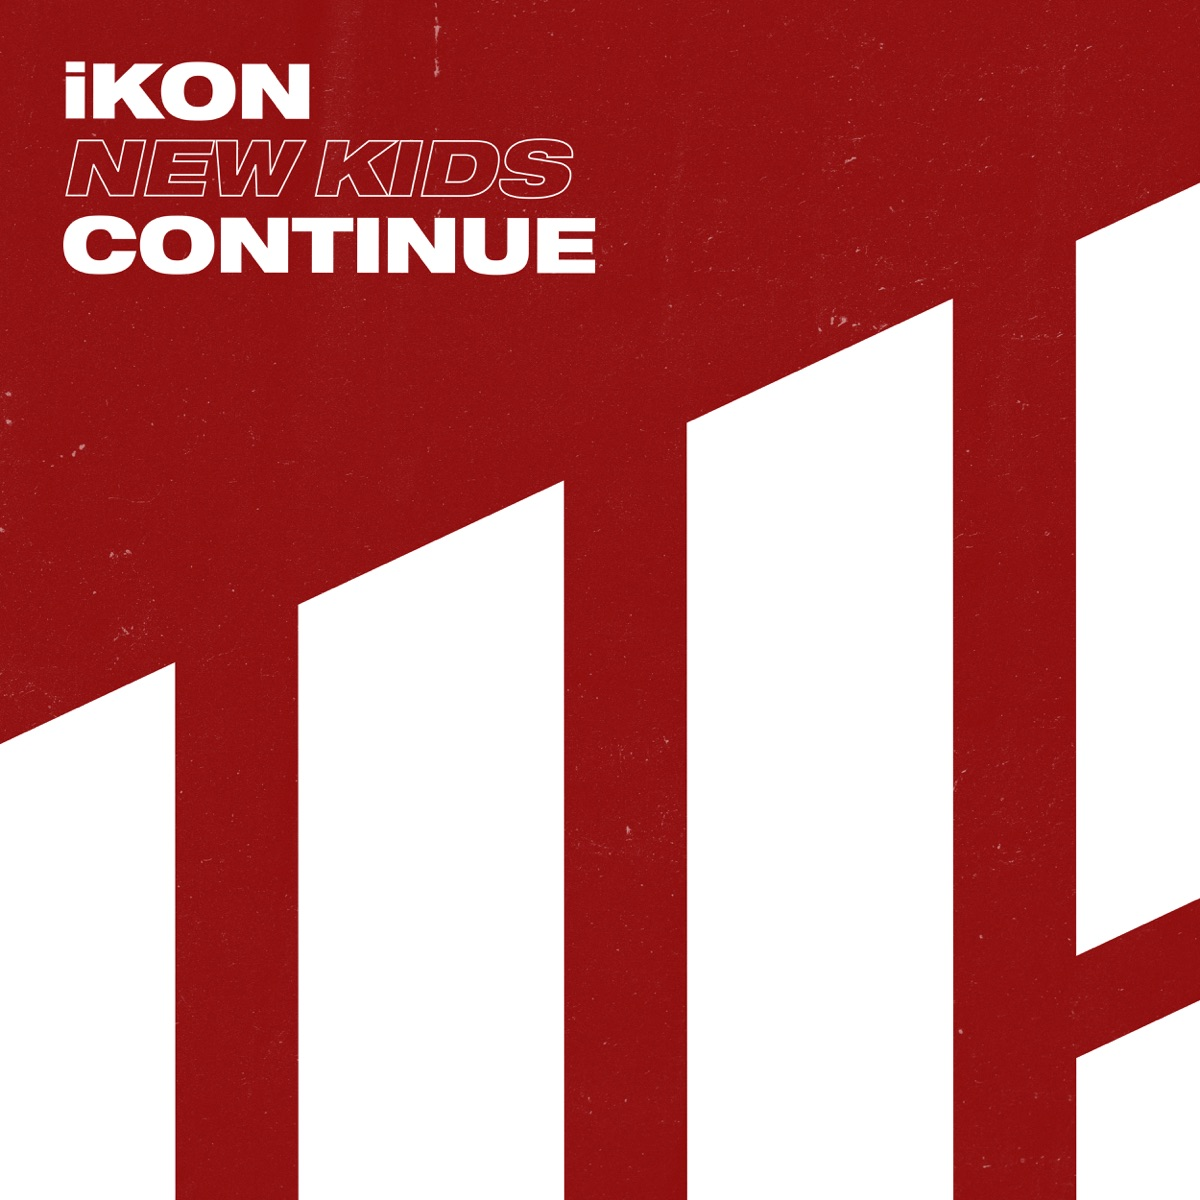 NEW KIDS : CONTINUE Album Cover by iKON